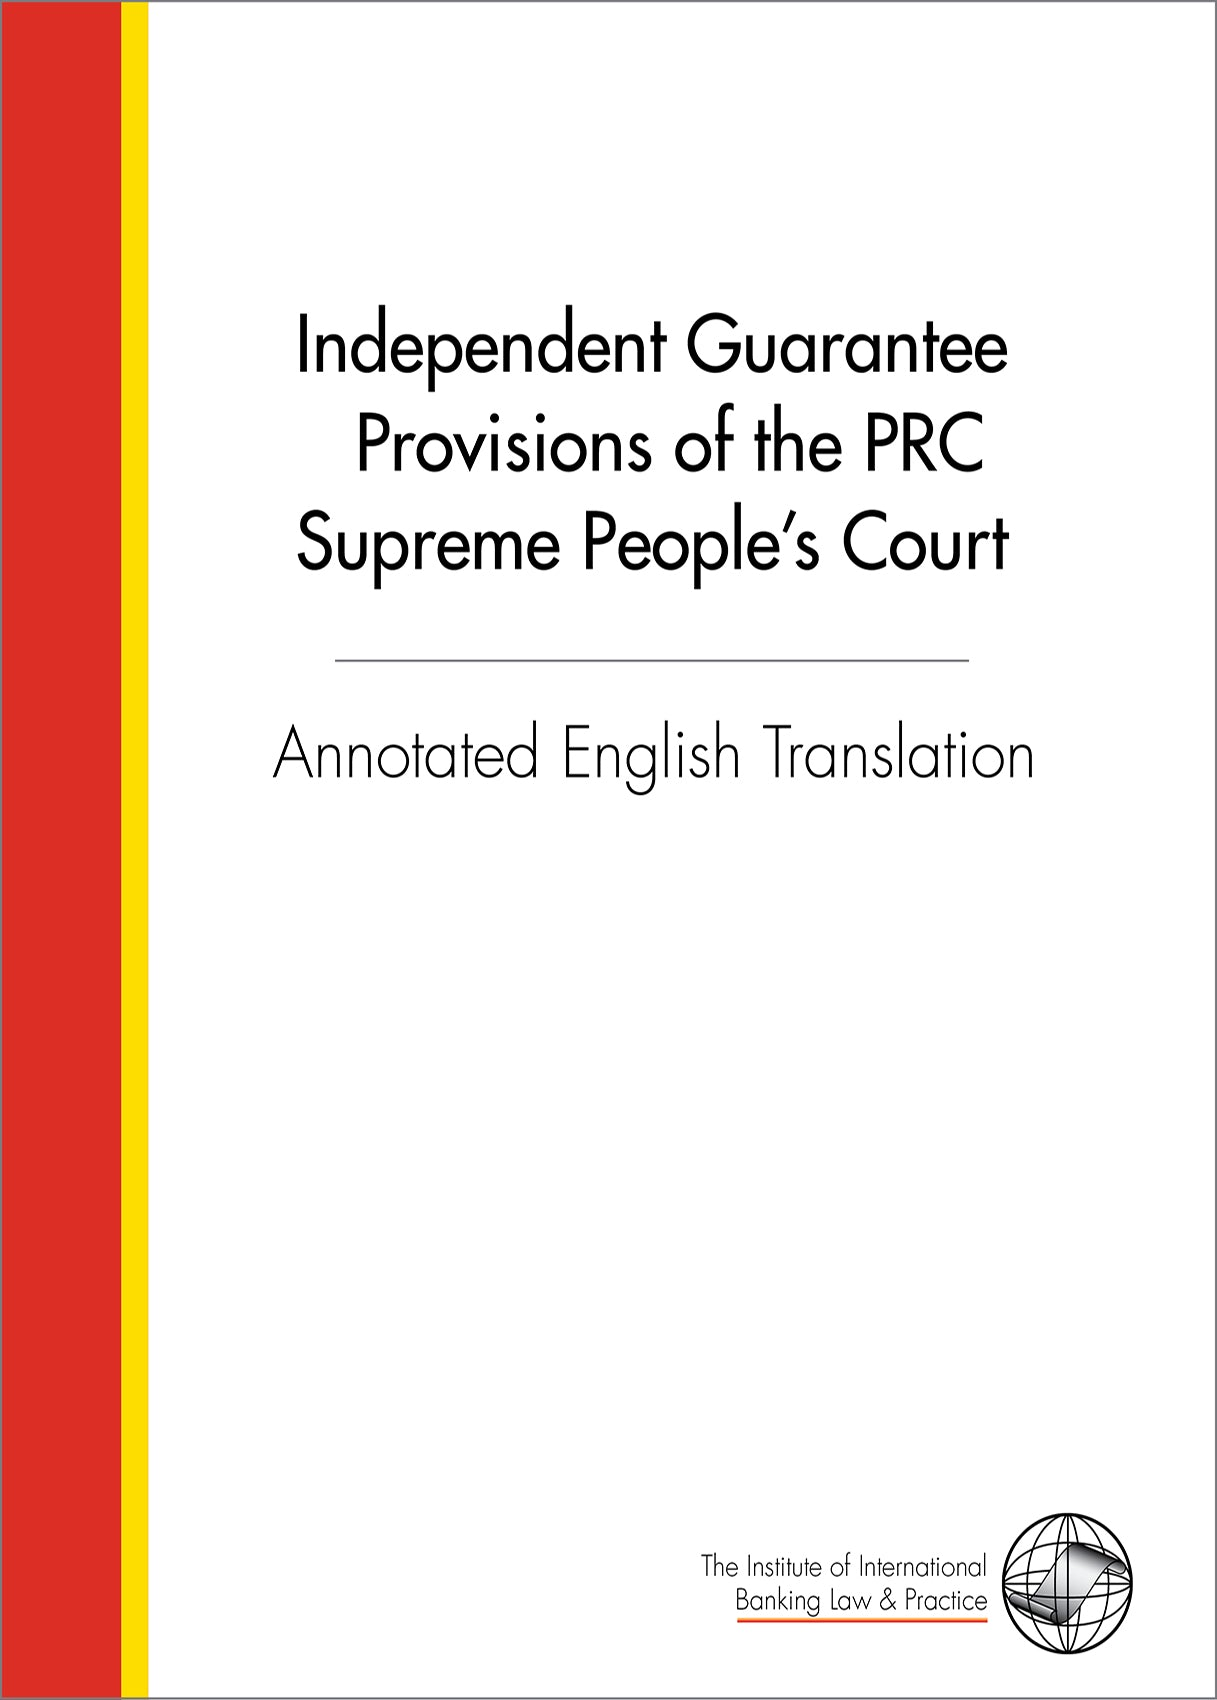 Annotated English Translation of the PRC Guarantee Provisions